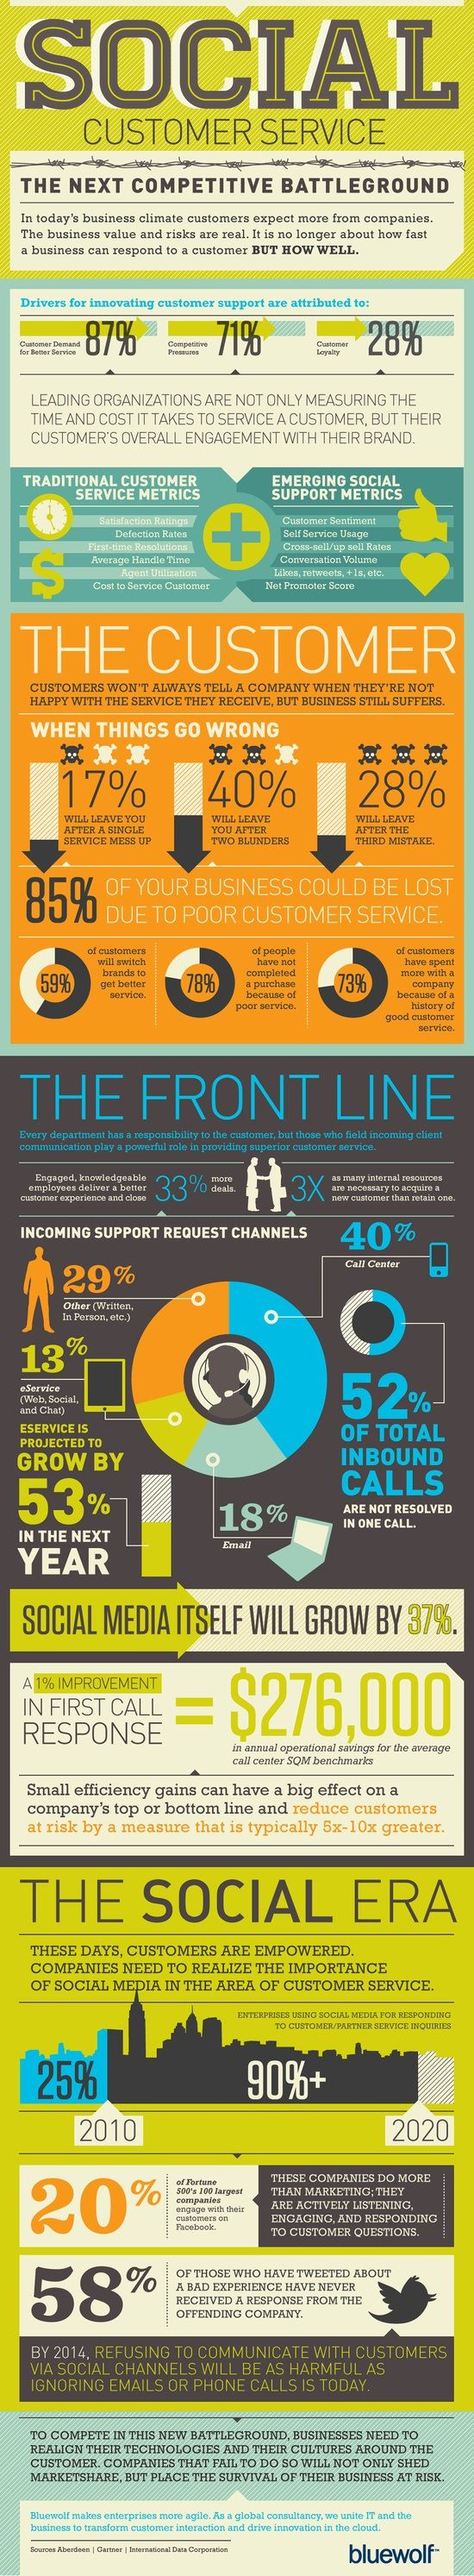 Social Customer Service #infographic